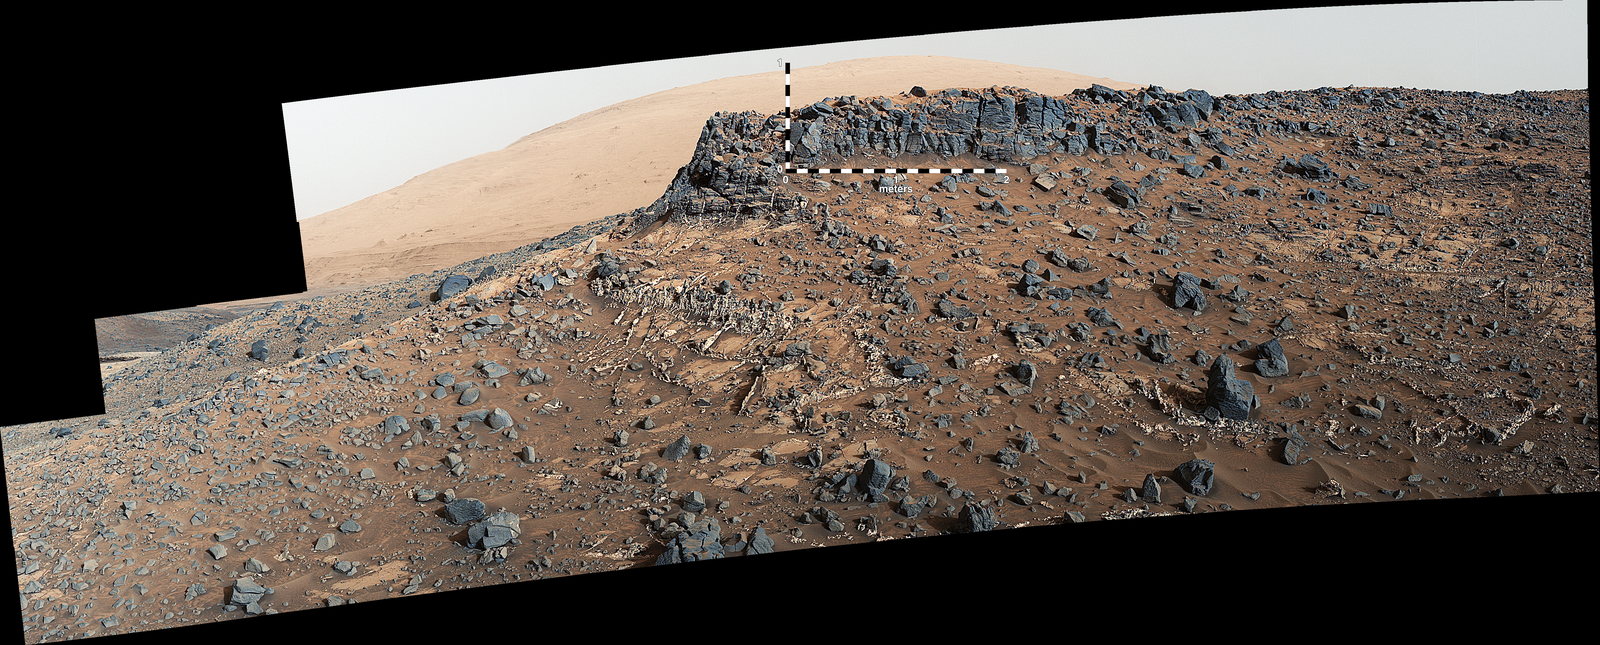 "This March 27, 2015, view from the Mast Camera (Mastcam) on NASA's Curiosity Mars rover shows a site with a network of prominent mineral veins below a cap rock ridge on lower Mount Sharp. At this ""Garden City"" site, the veins have been more resistant to erosion than the surrounding host rock."